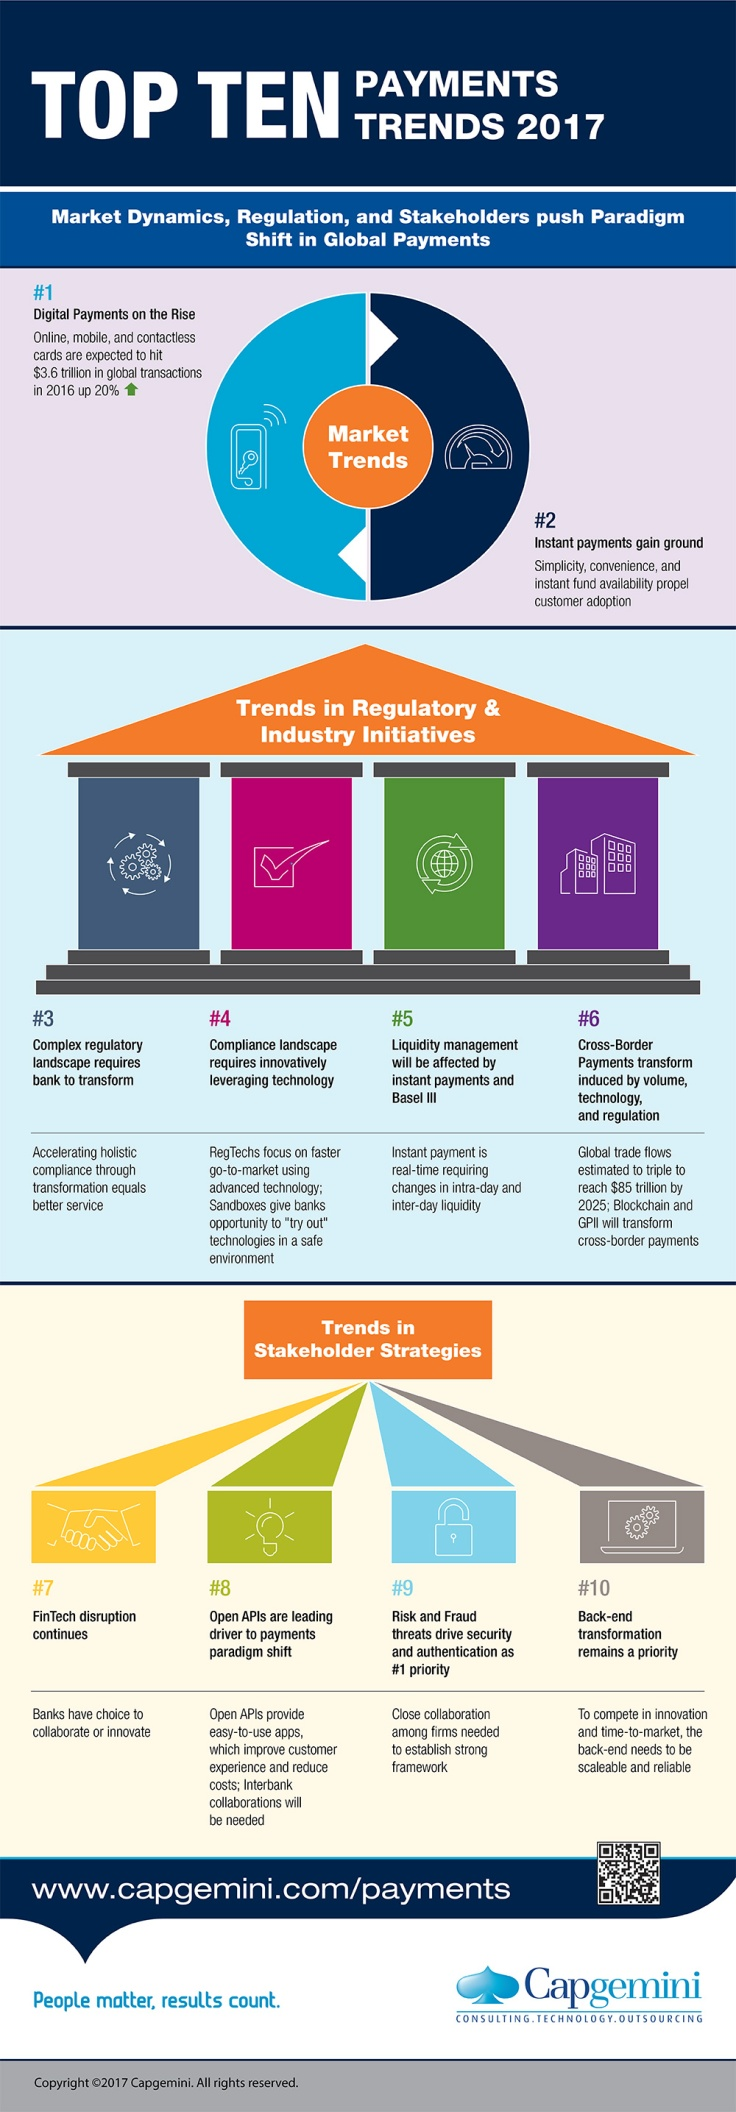 top-10-payments-trends-2017_-infographic